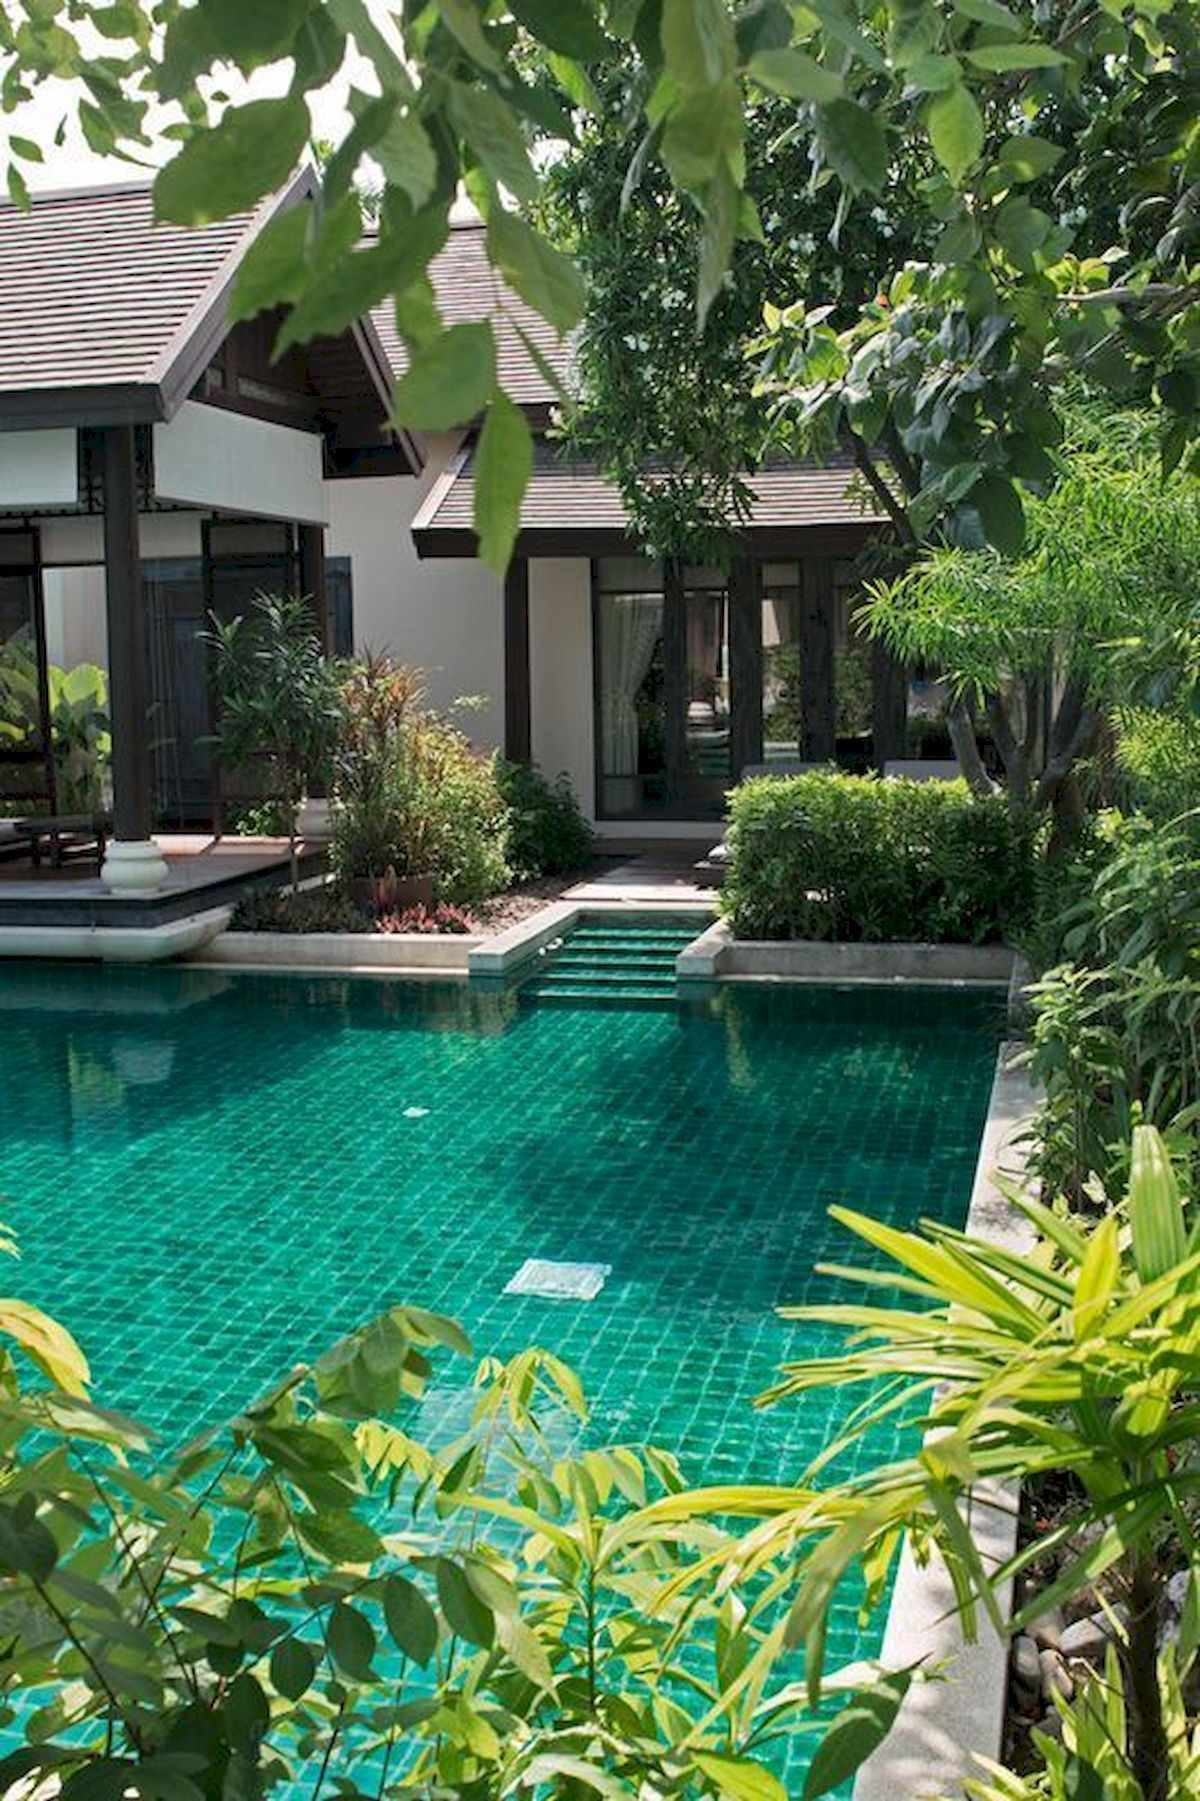 30 Awesome Backyard Swimming Pools Design Ideas in 2020 ... on Tropical Backyard Ideas With Pool id=38444